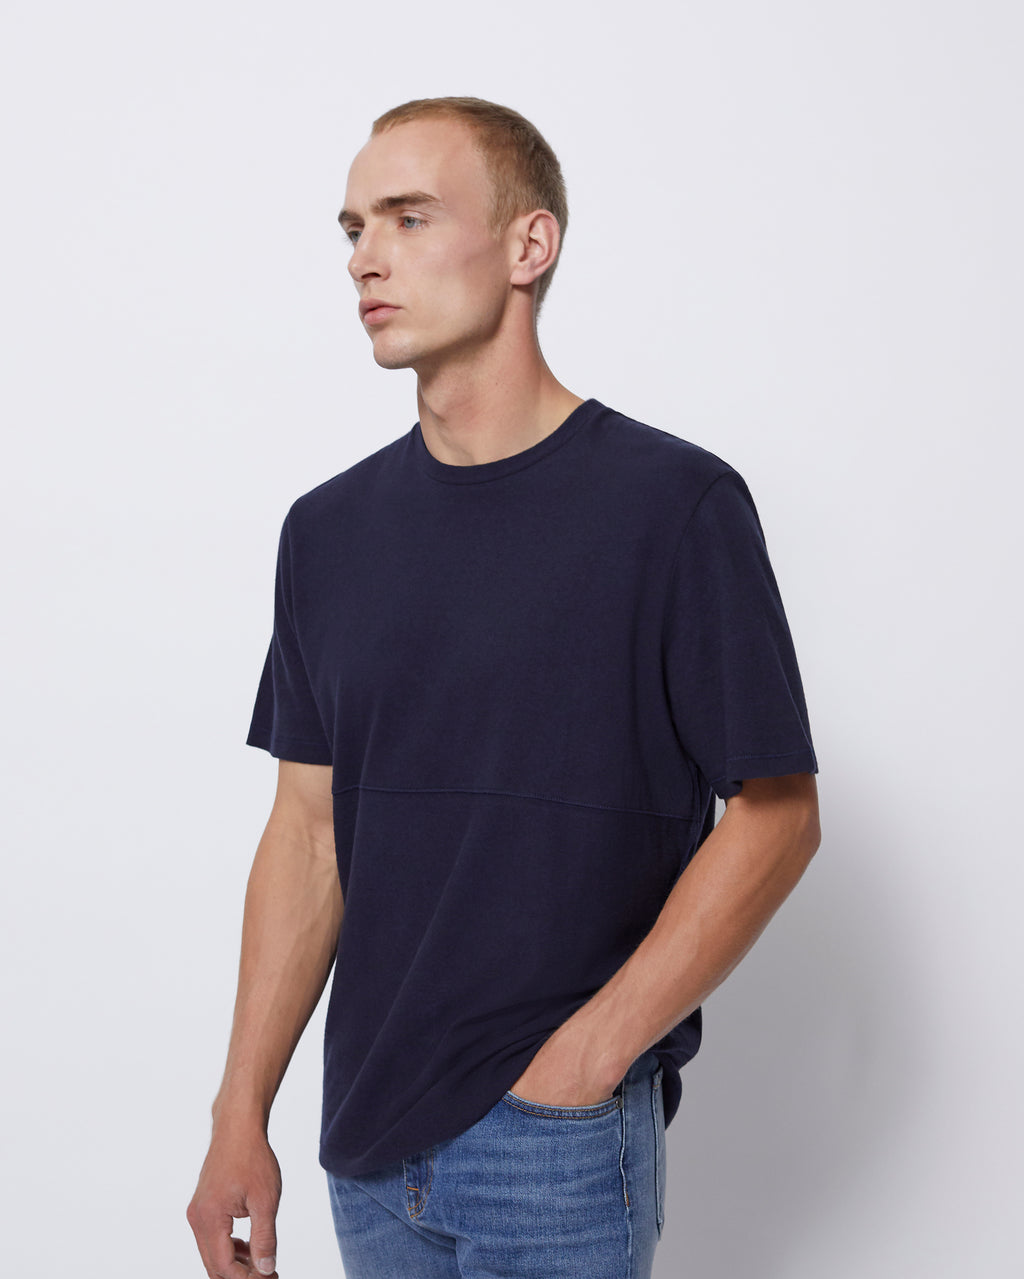 The Willet Tee in Navy